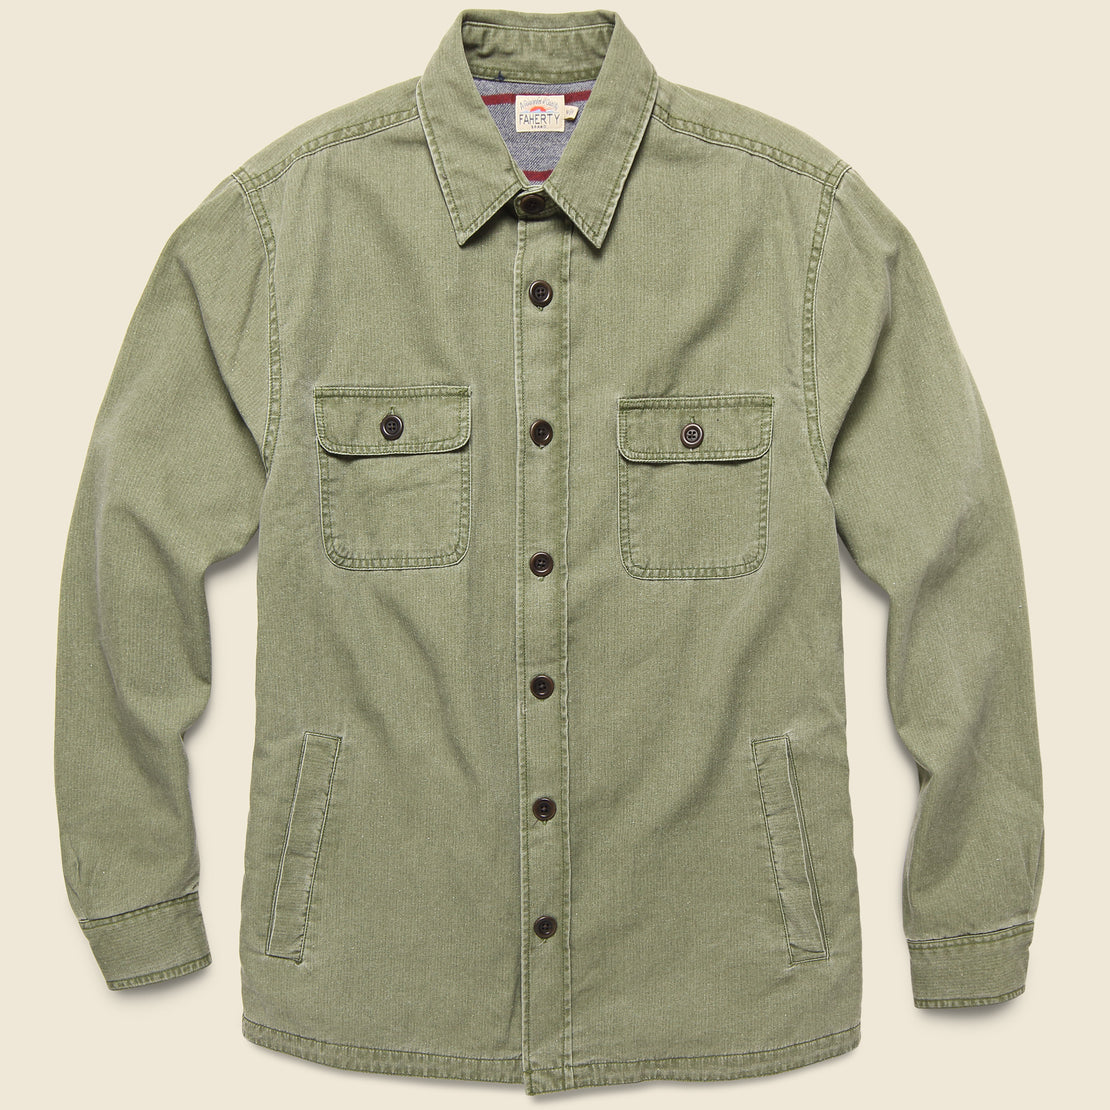 Faherty Blanket Lined CPO Shirt Jacket - Olive